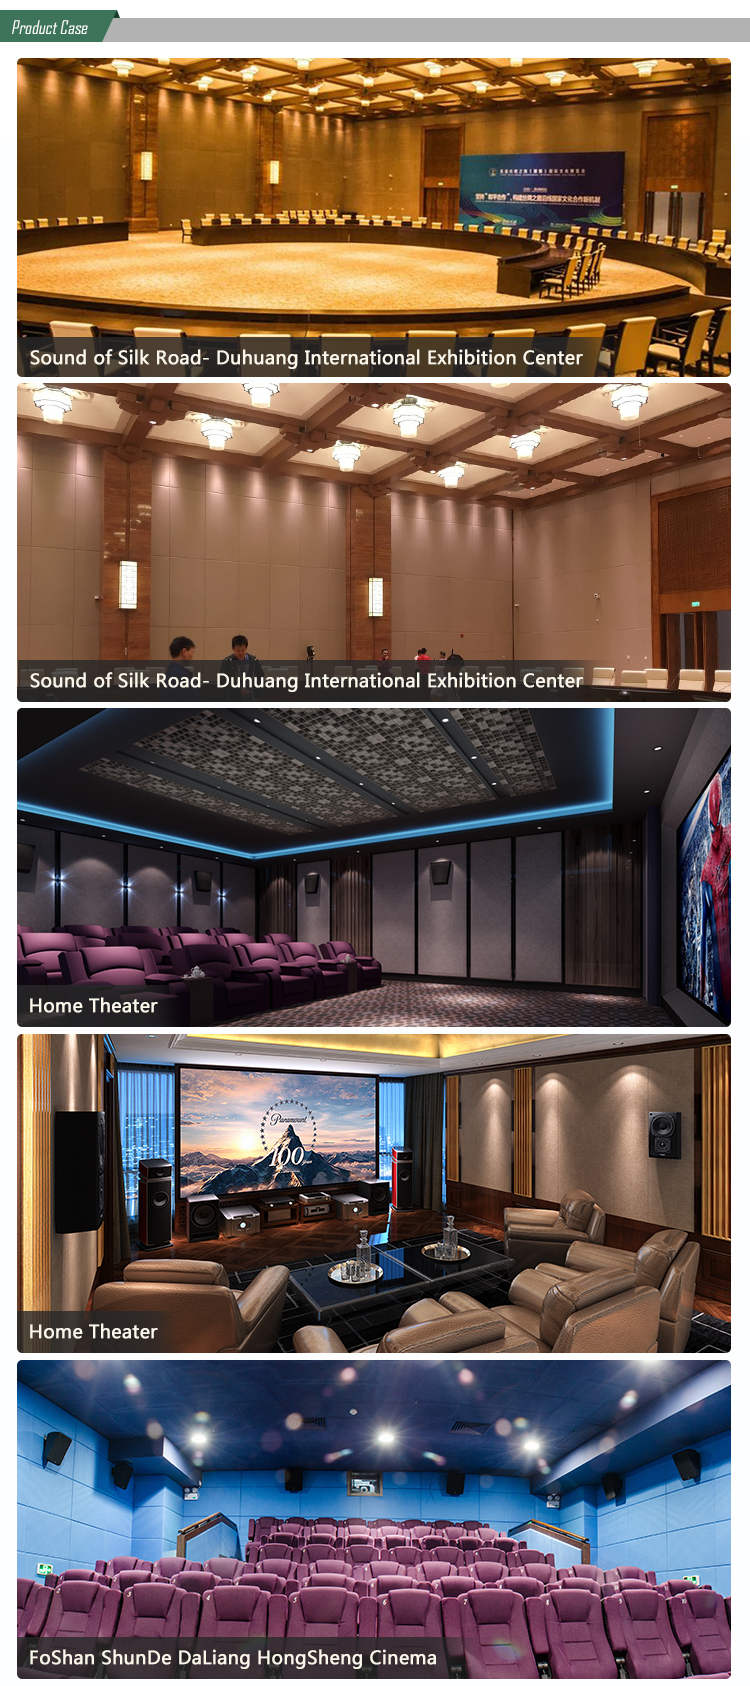 Music recoding room decorative sound absorbing fabric acoustic studio panel